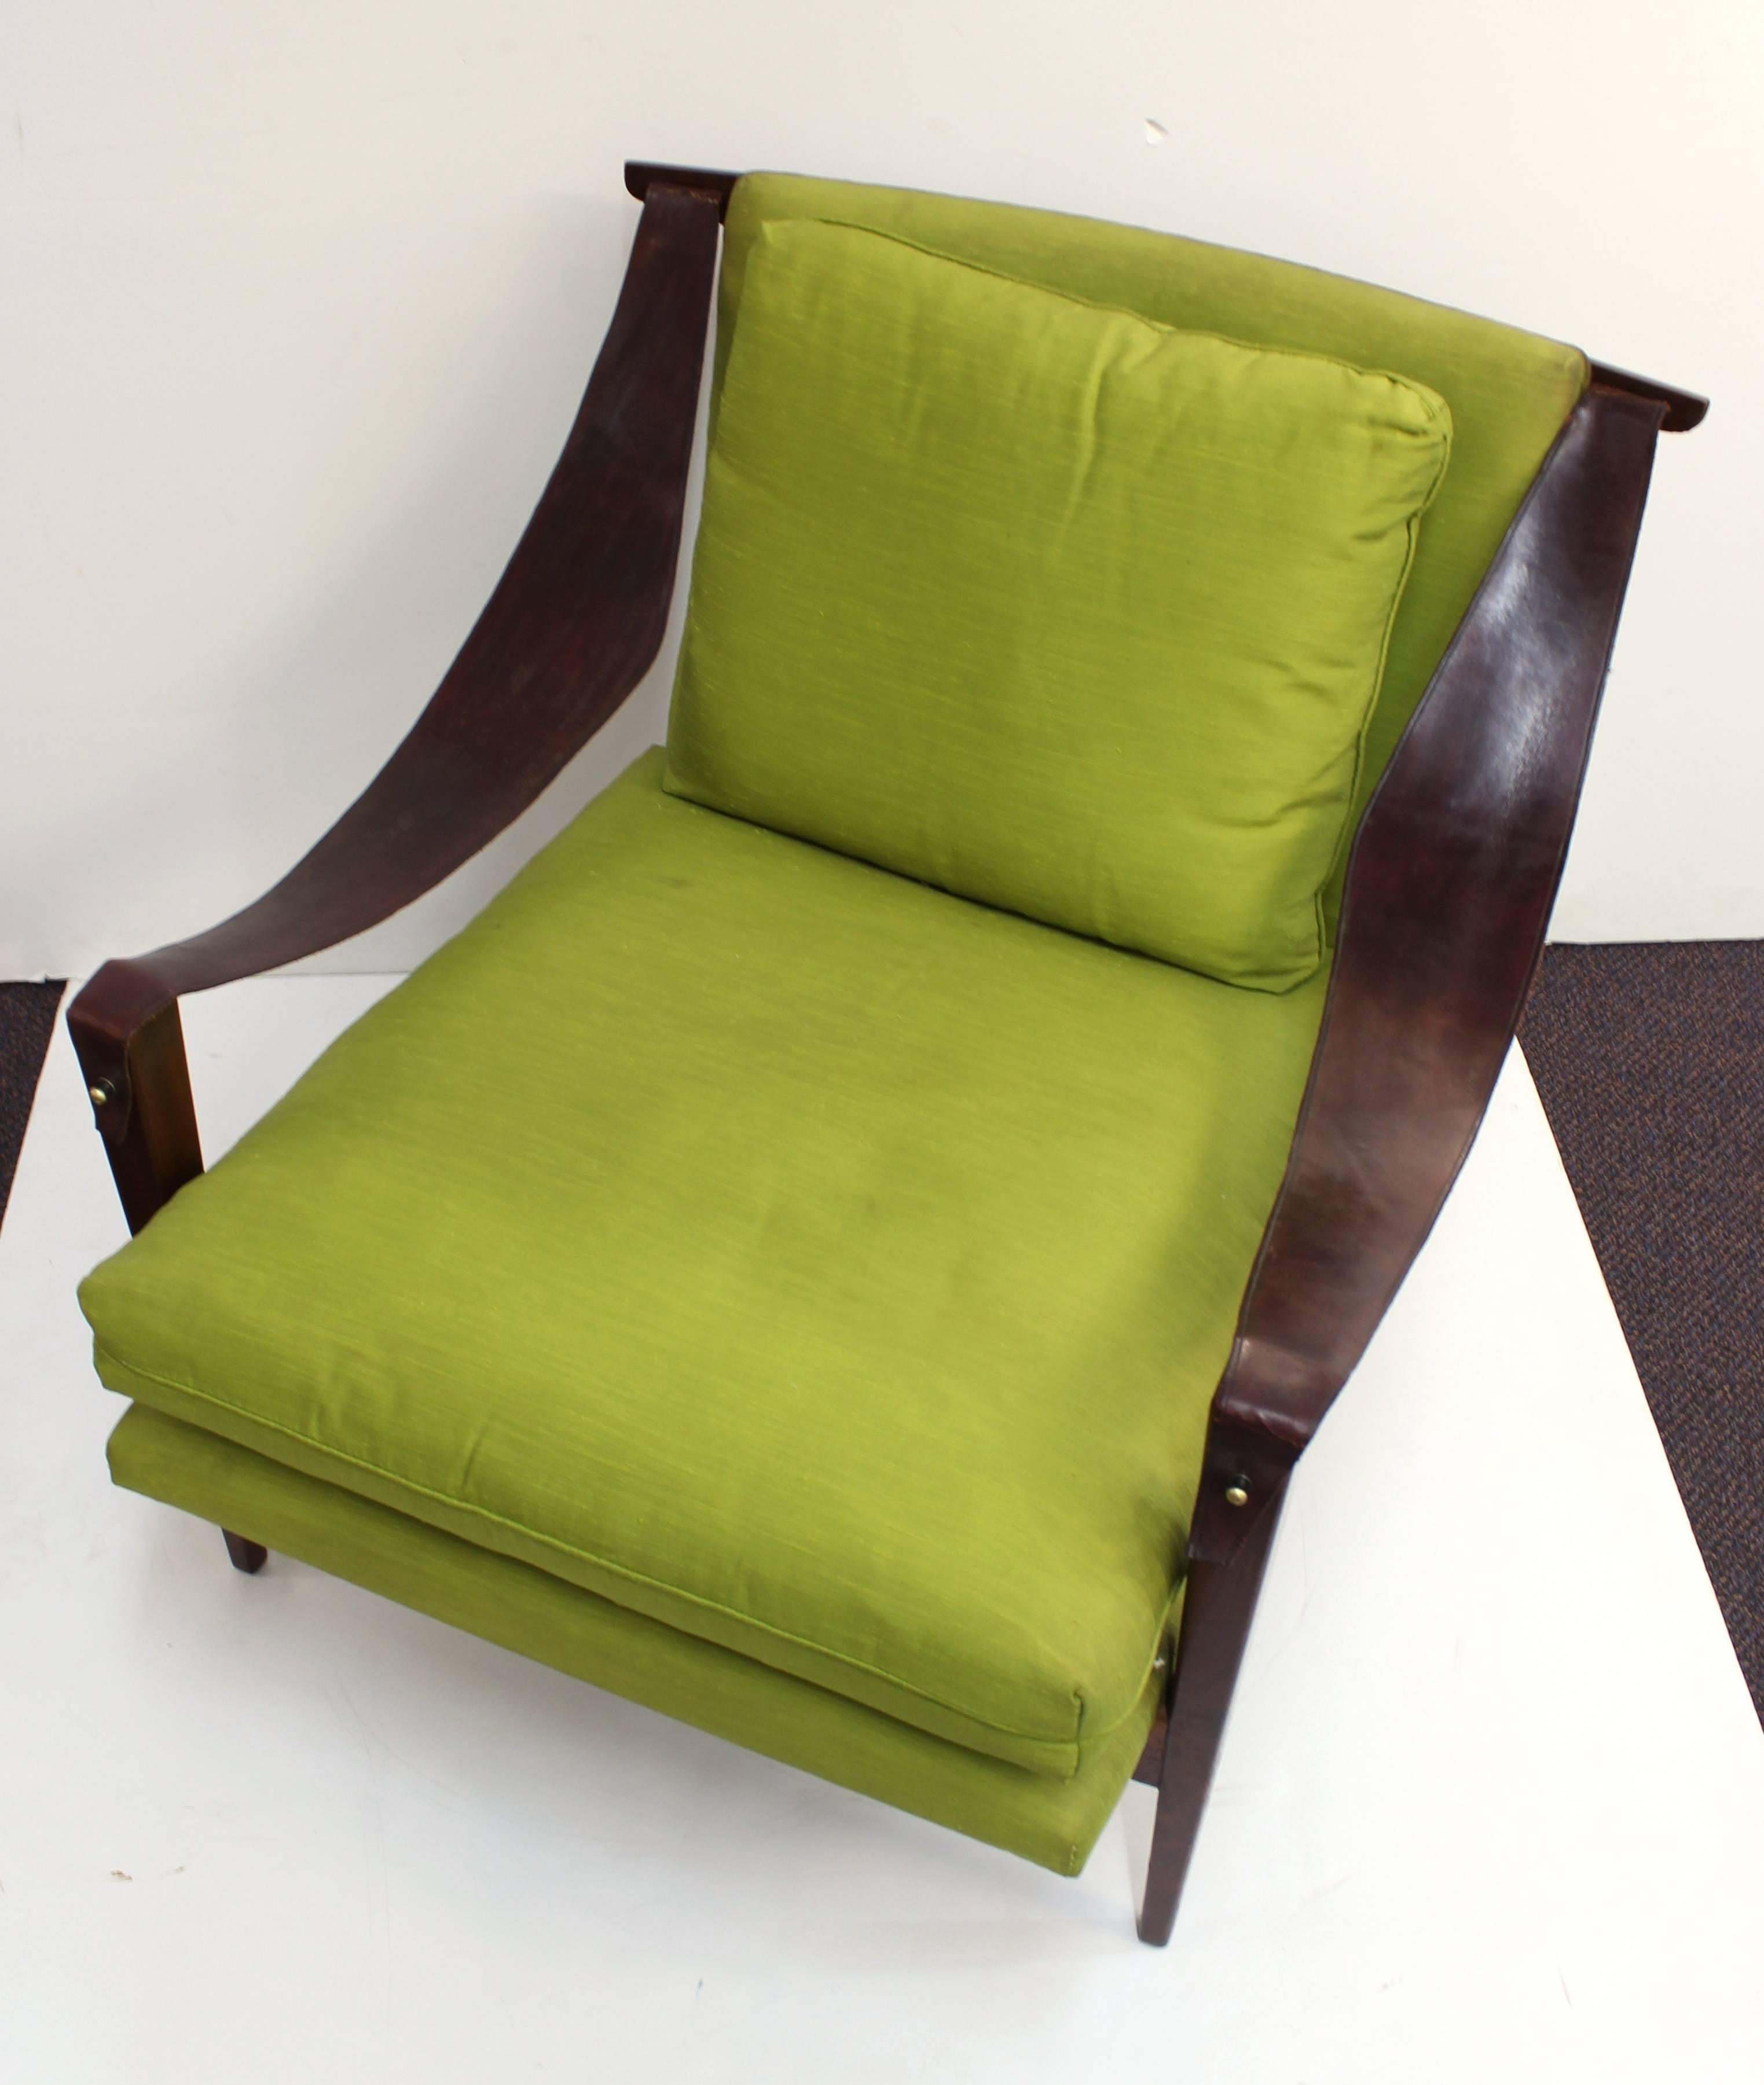 Enfield Chairs With Leather Swing Arms And Chartreuse Green Upholstery For  Sale 3